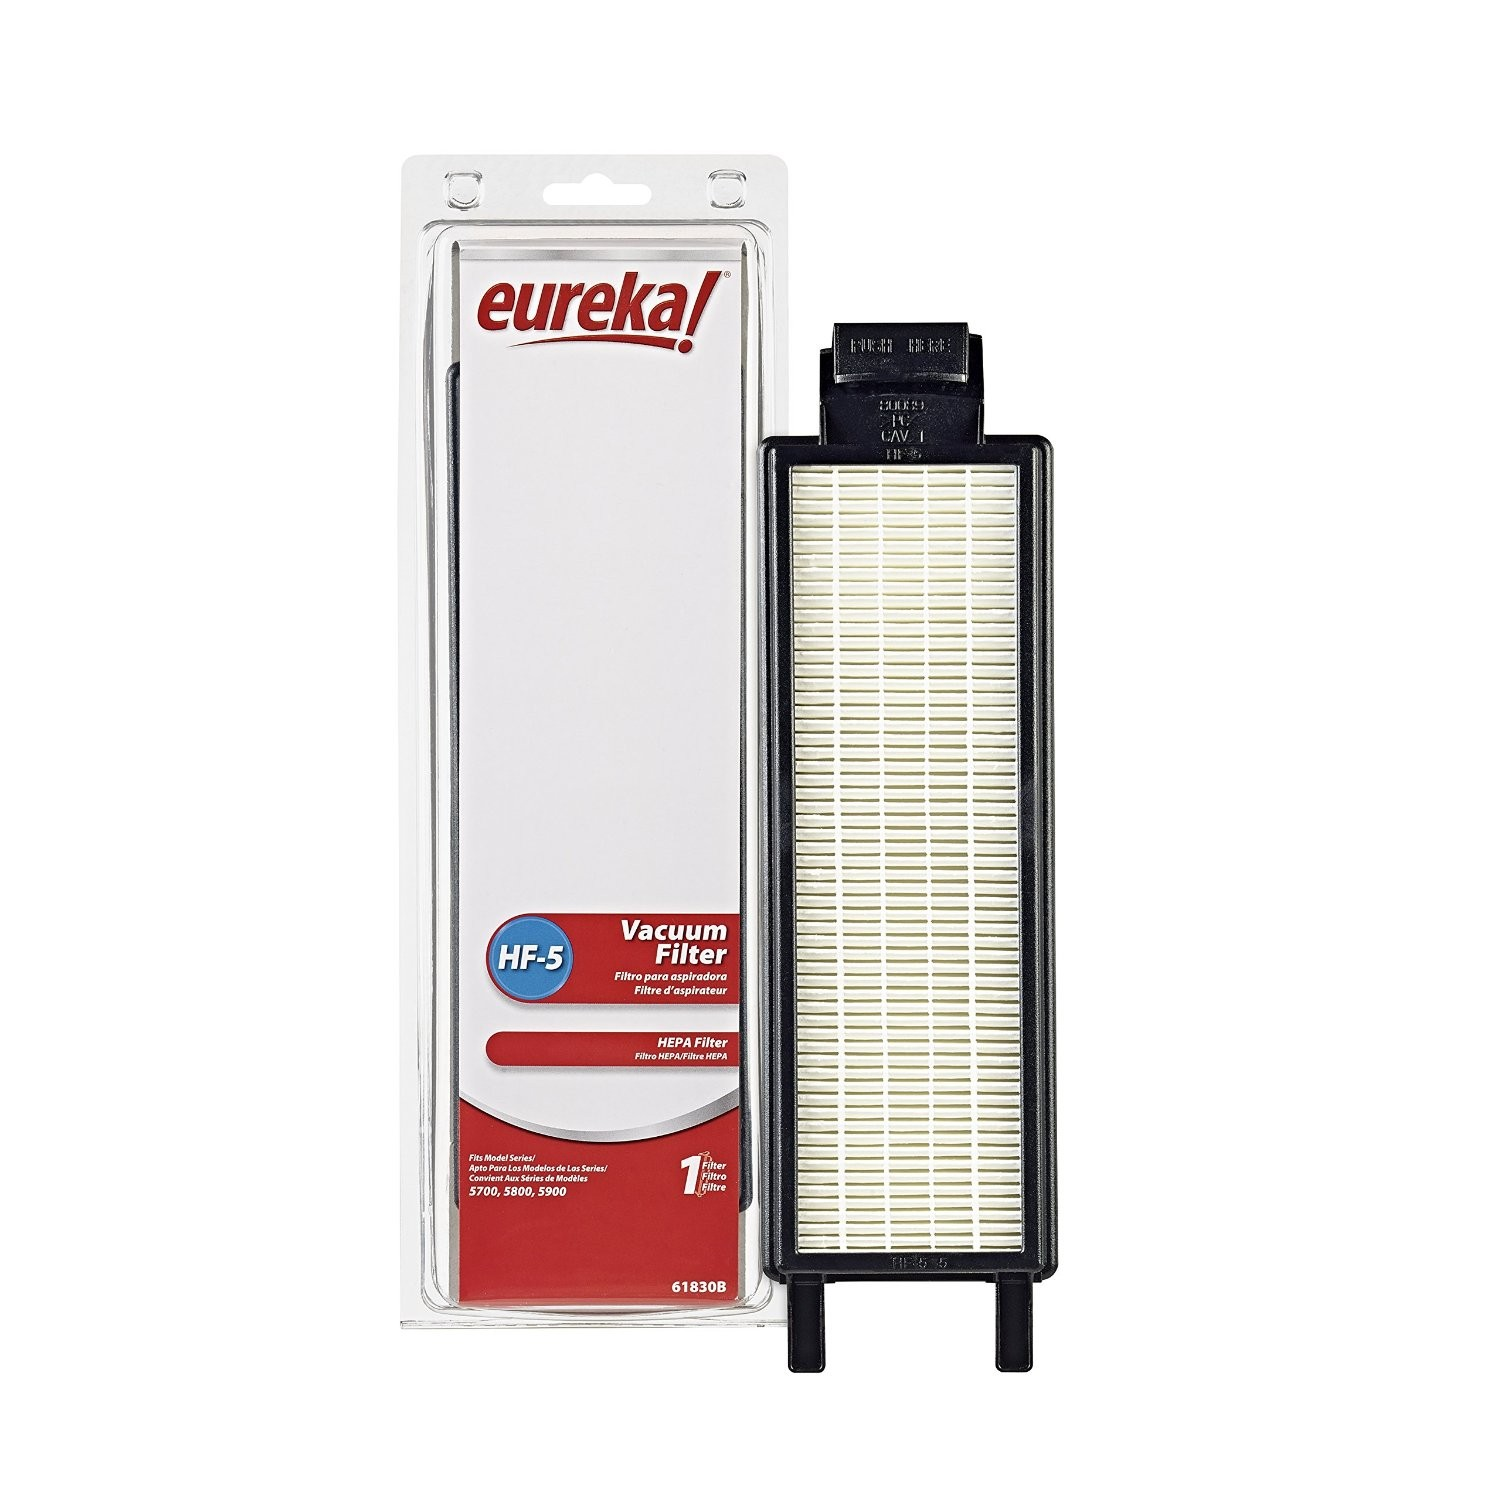 Eureka HF-5 Hepa filter for Lightspeed